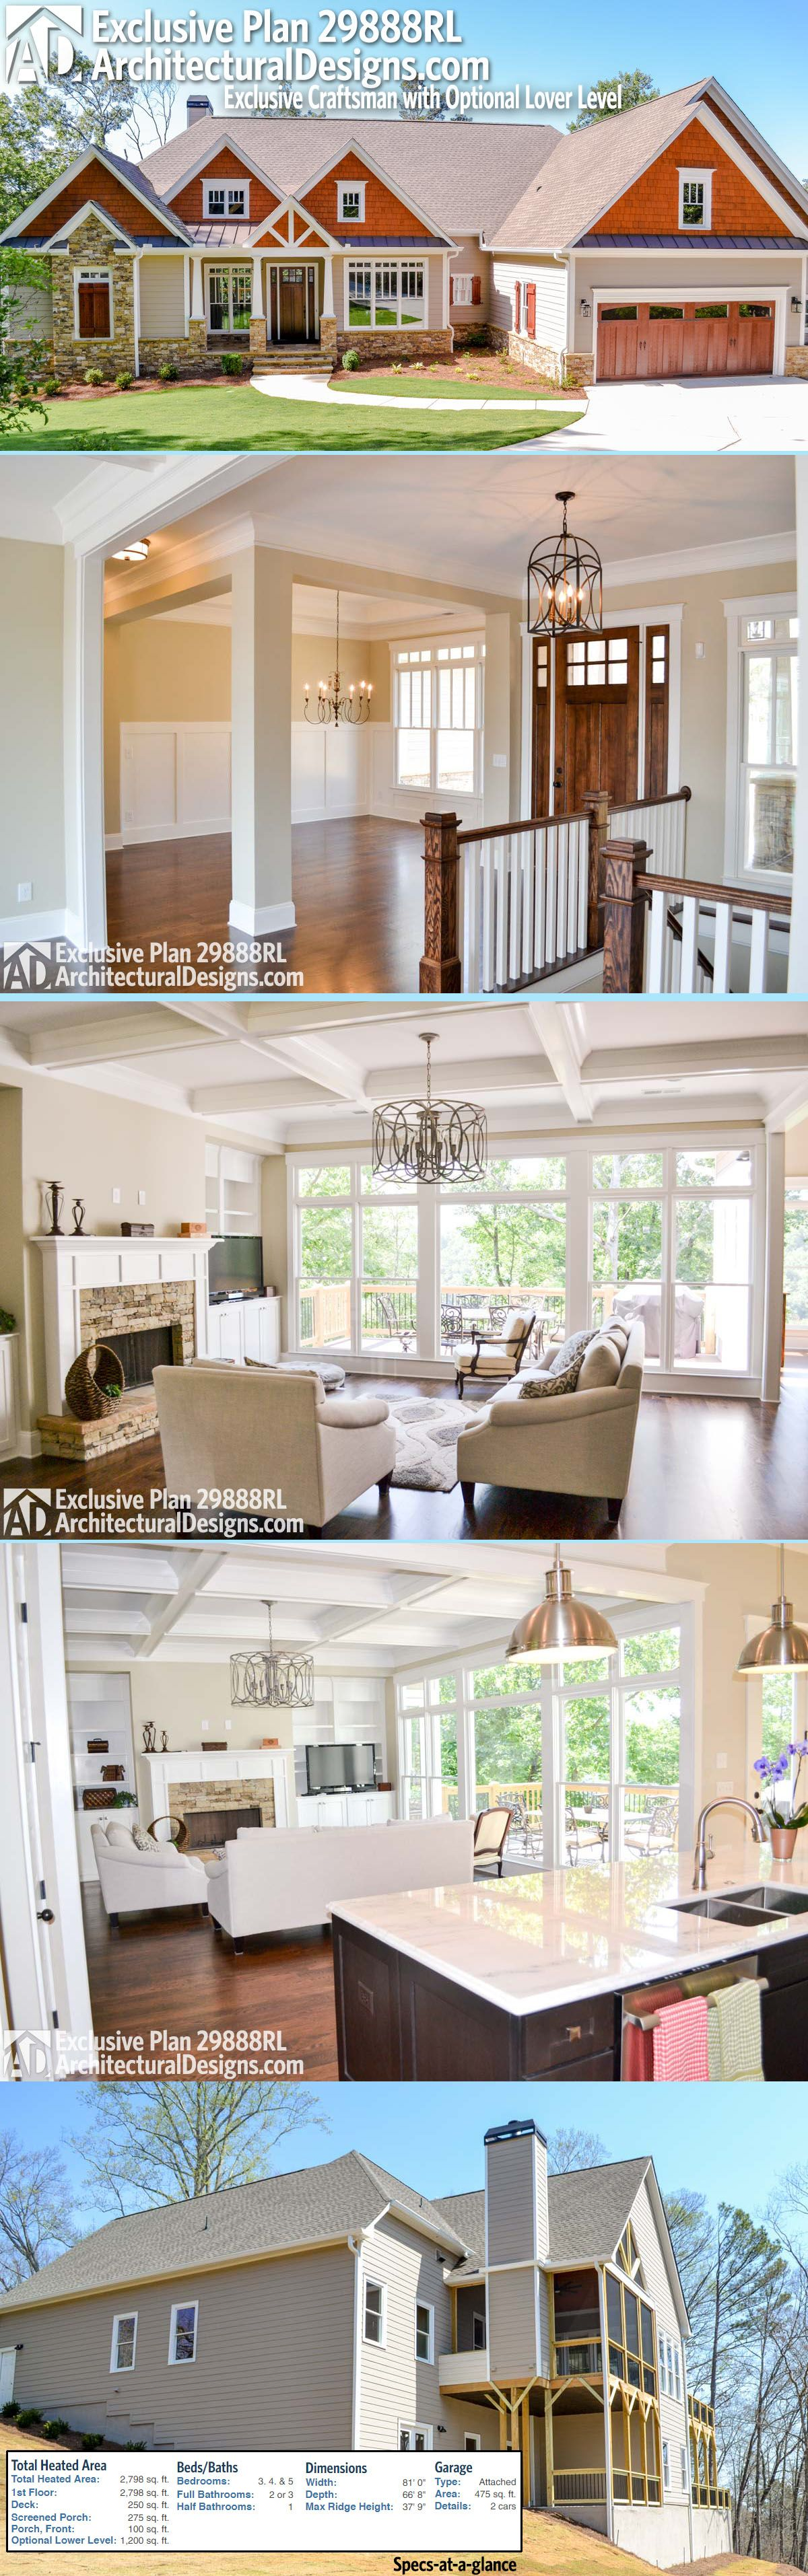 Introducing Architectural Designs Exclusive House Plan 29888RL